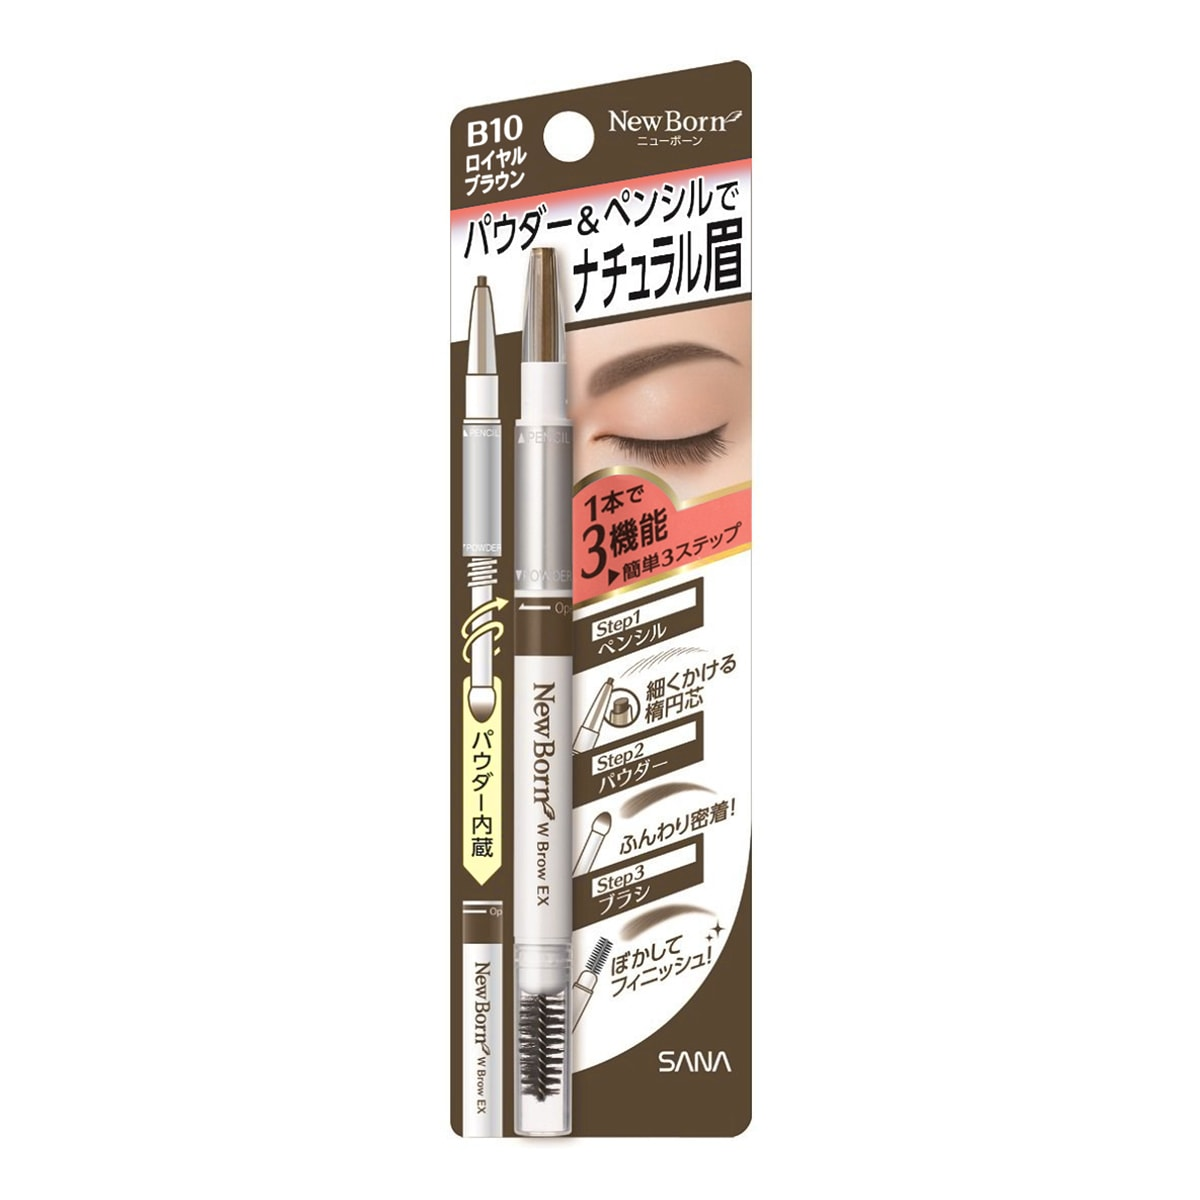 Yamibuy.com:Customer reviews:SANA NEW BORN EX Eyebrow Mascara And Pencil #B10 Royal Brown 1pc